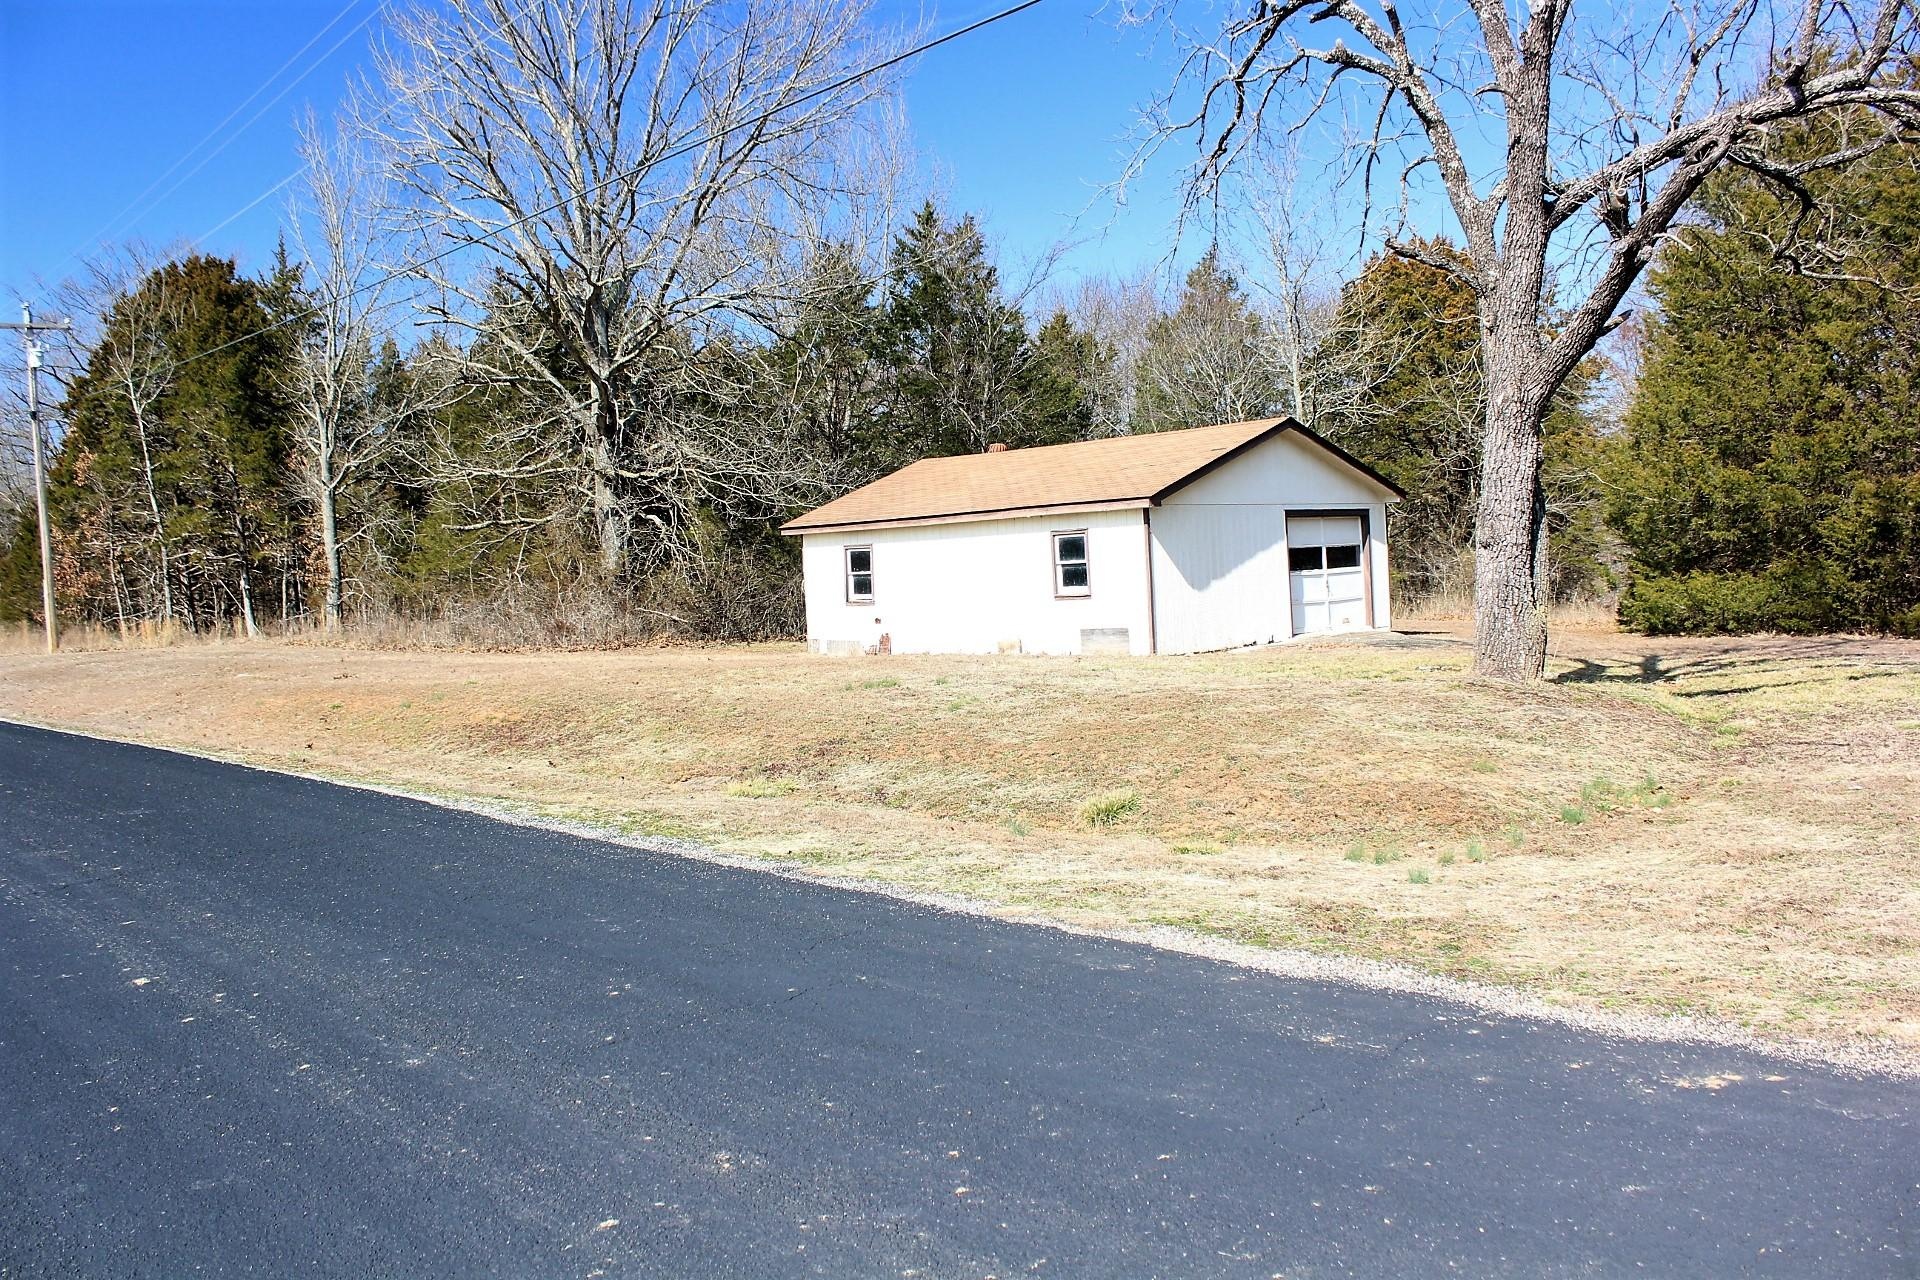 Lots 15-18 Kings River Road Shell Knob, MO 65747